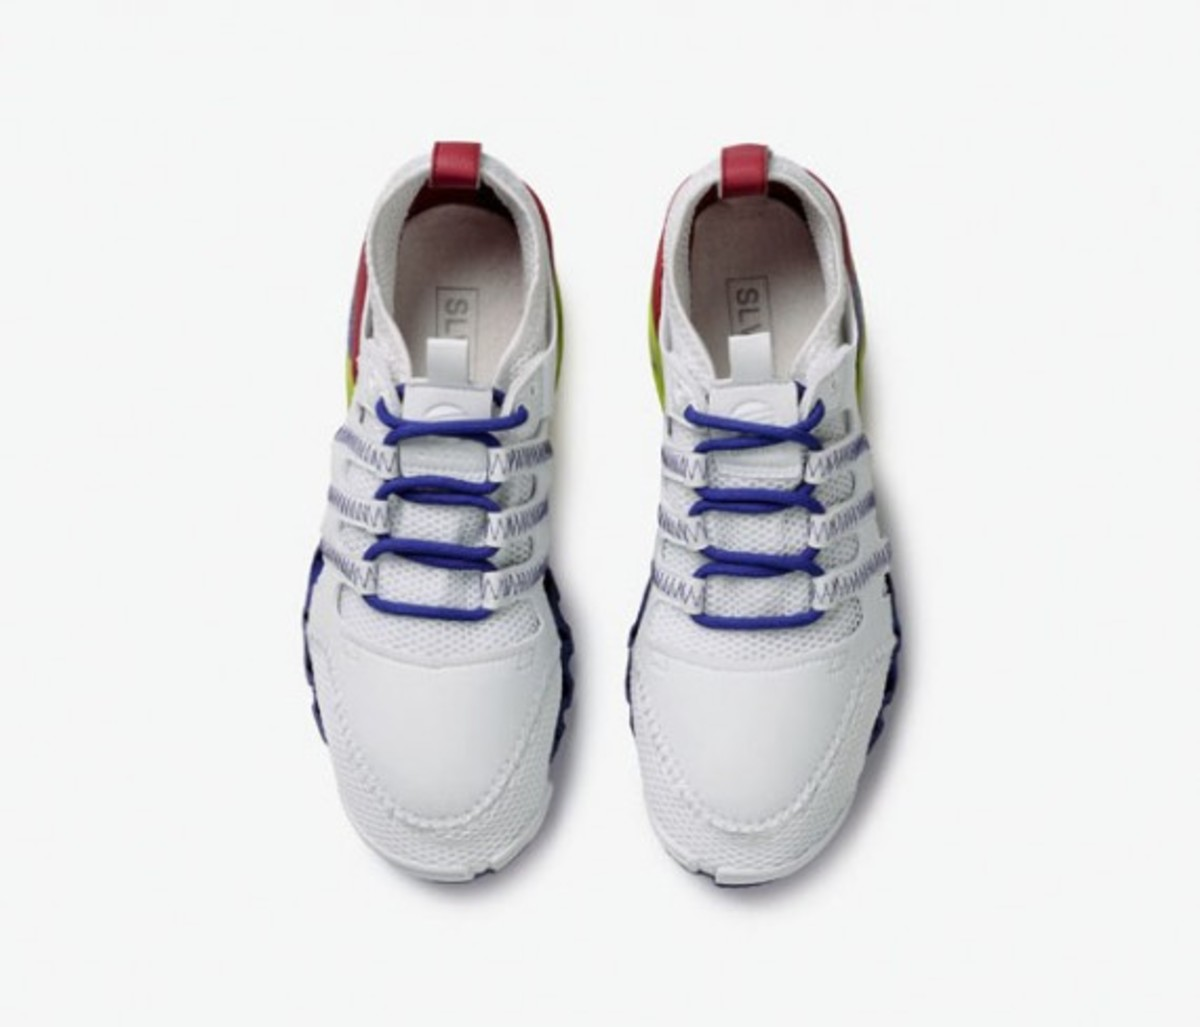 adidas-slvr-ss12-footwear-collection-23